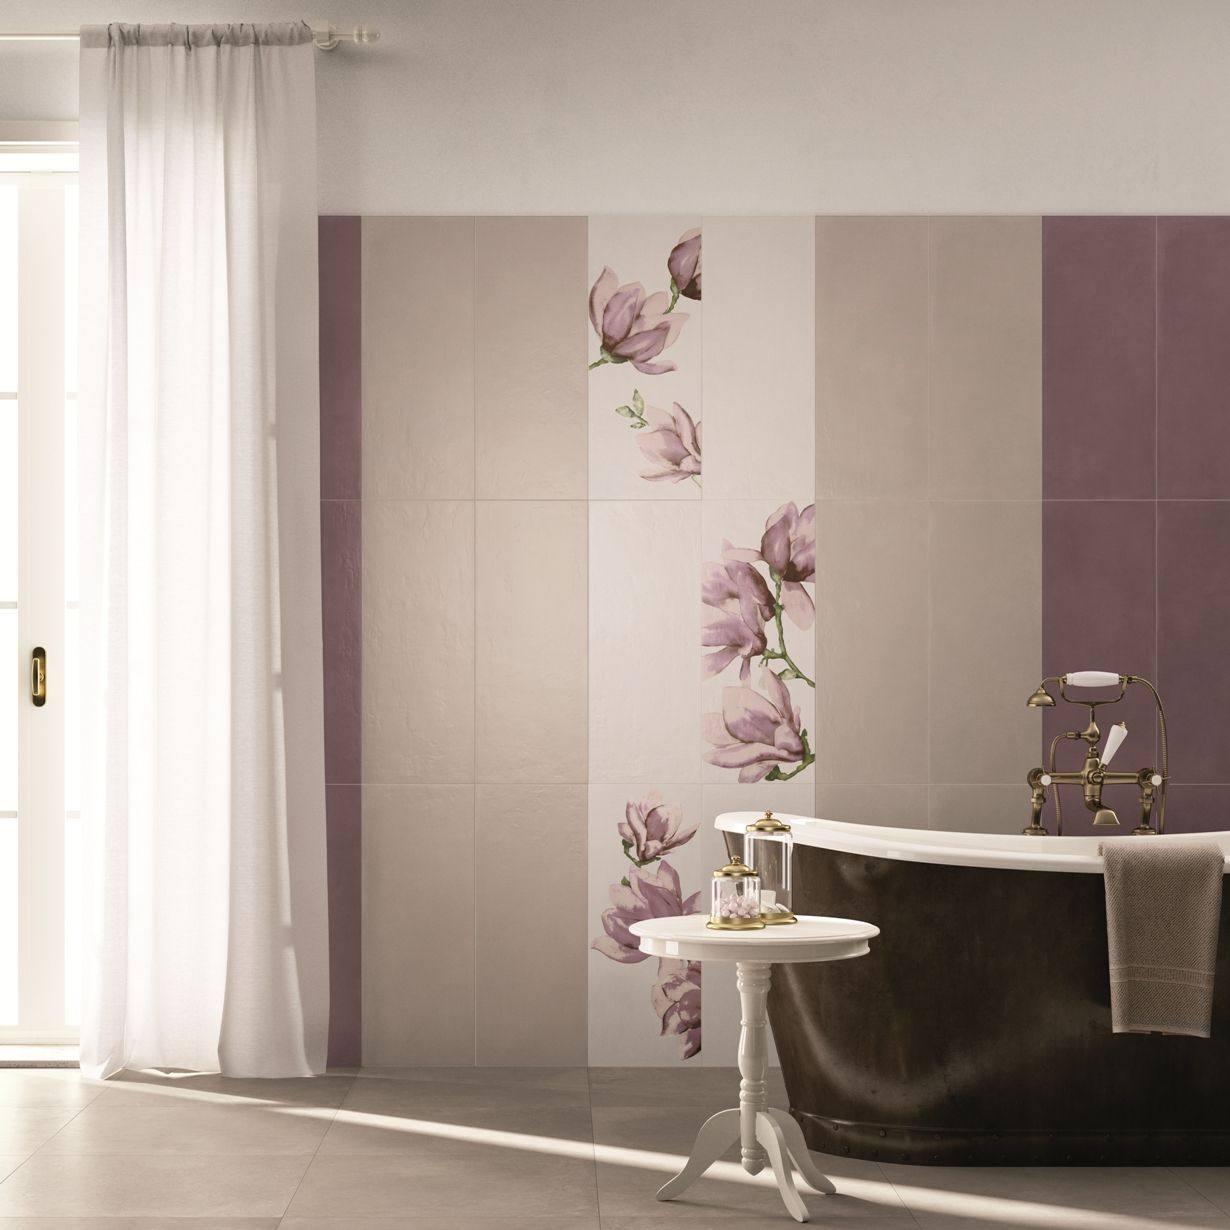 Pinterest the world s catalog of ideas - Piastrelle bagno damascate ...